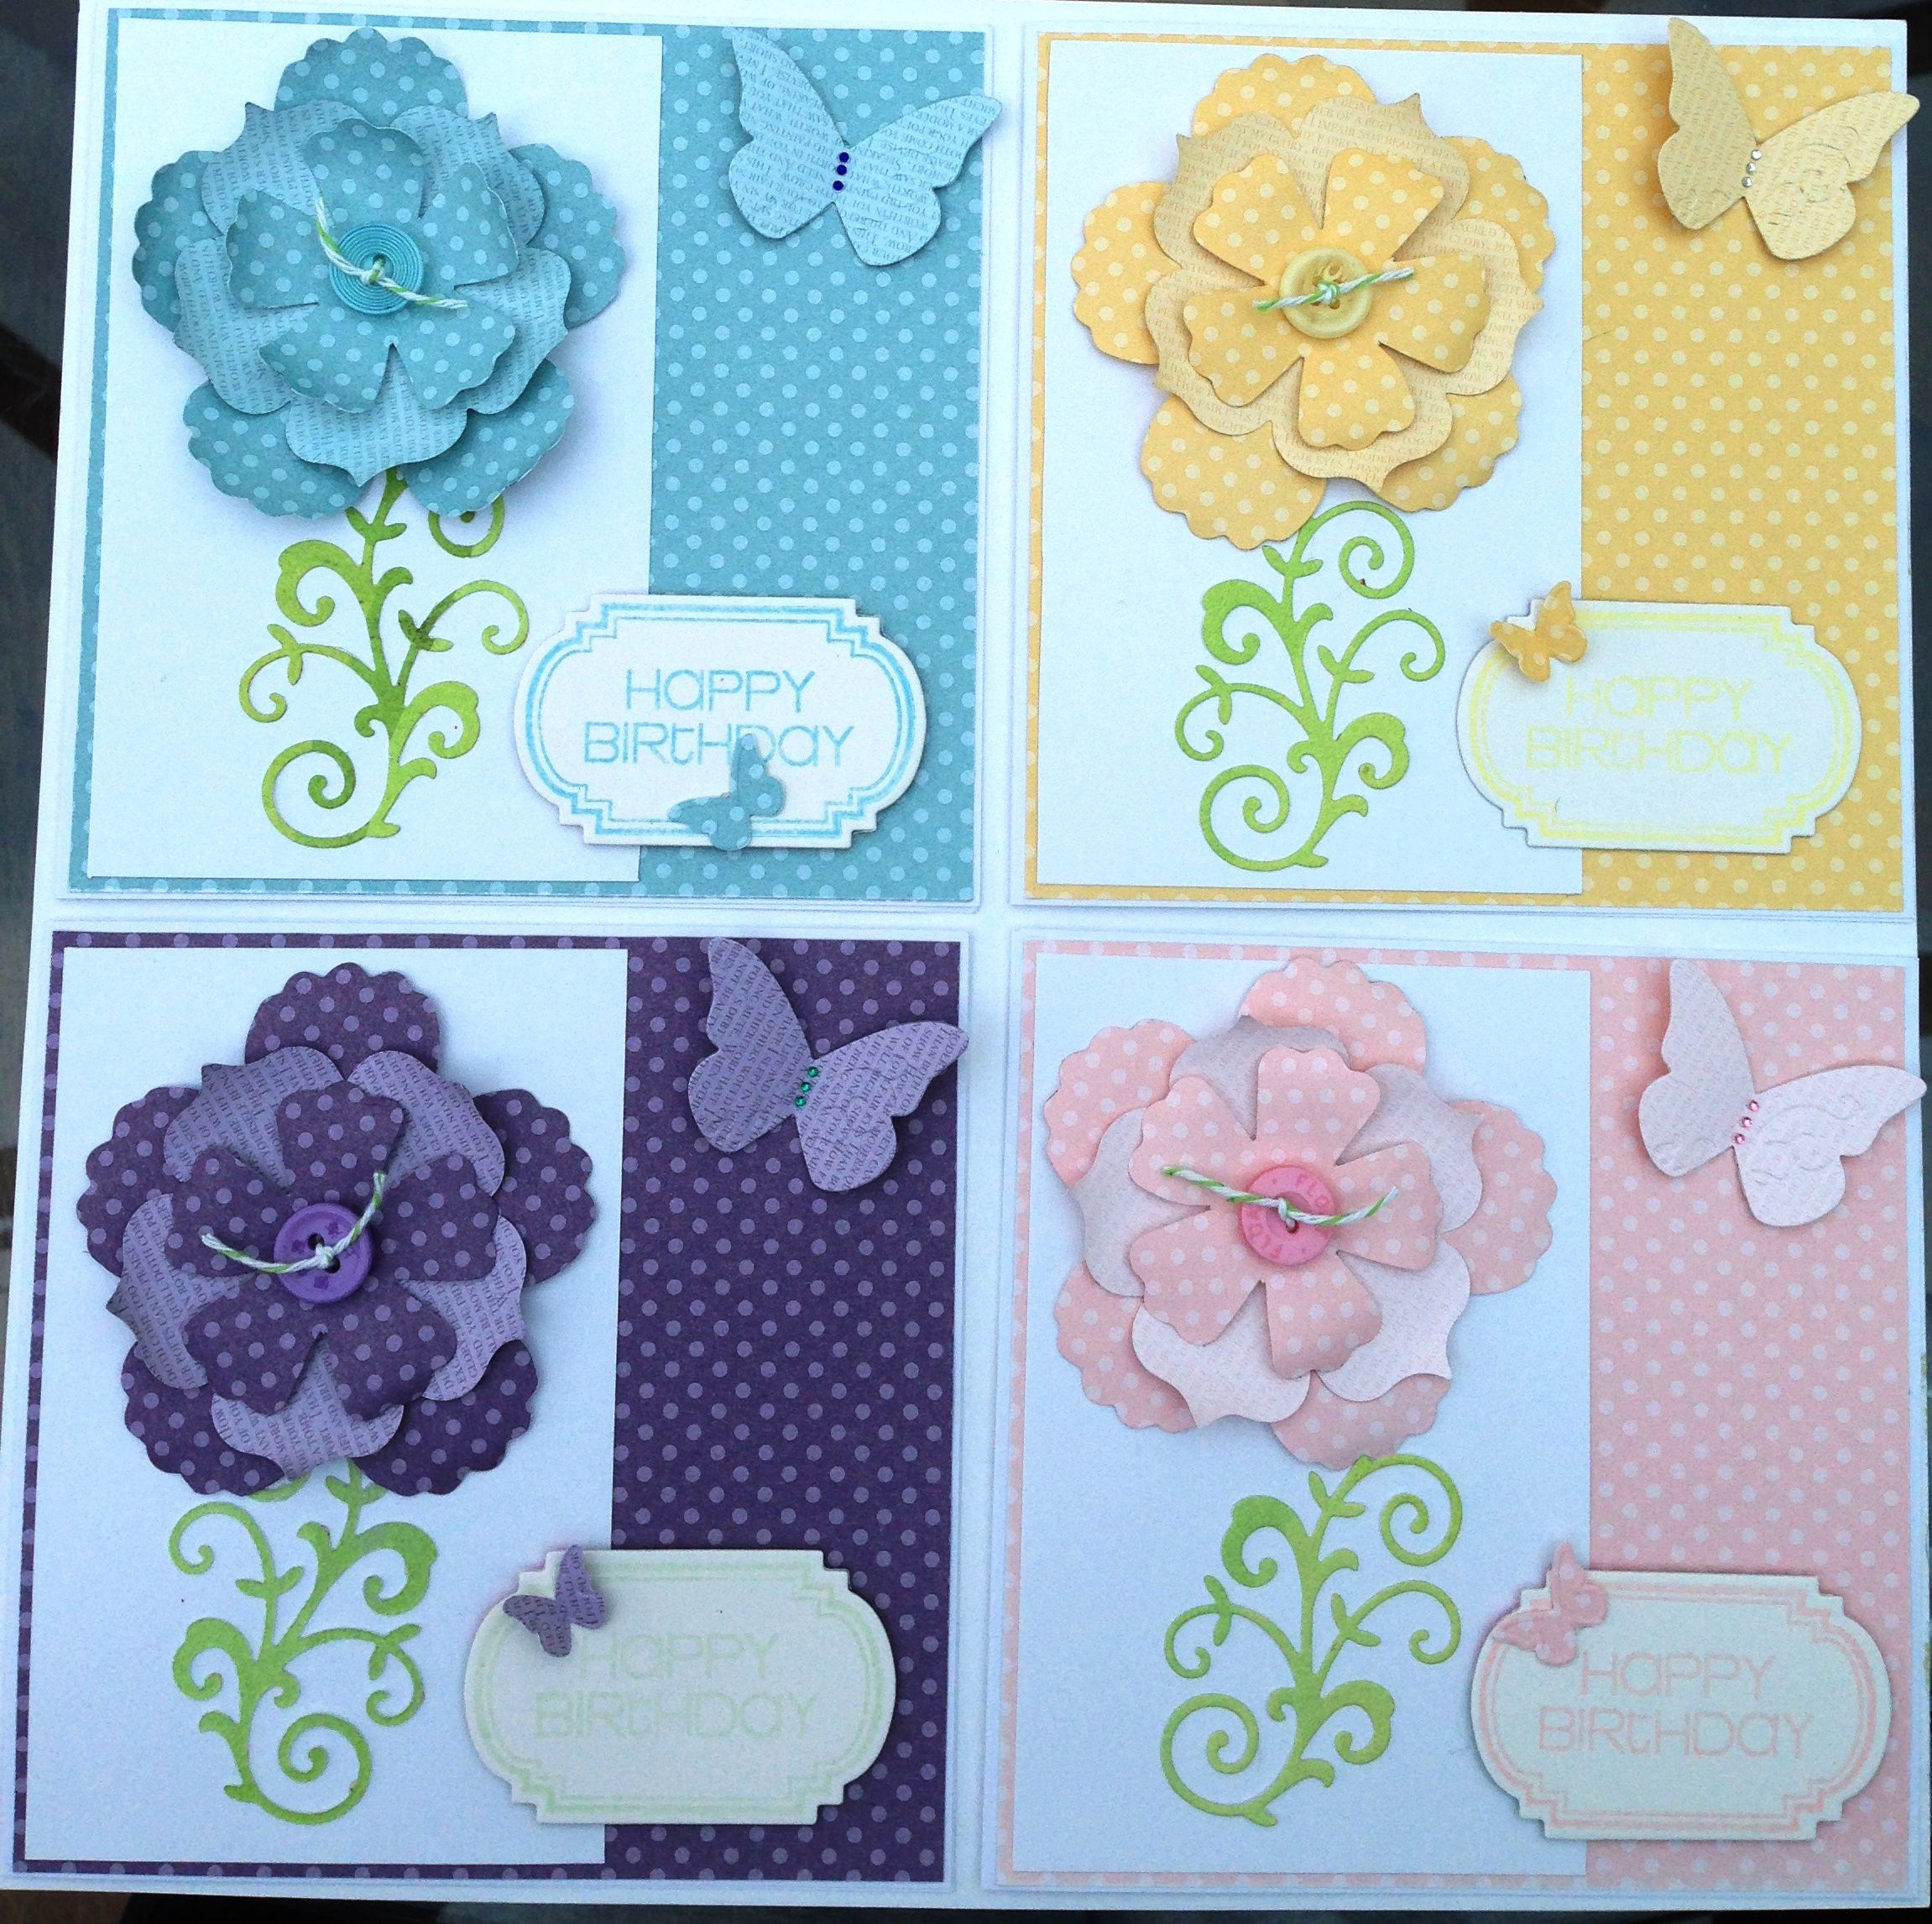 Happy birthday cards with dimensional flowers and butterflies